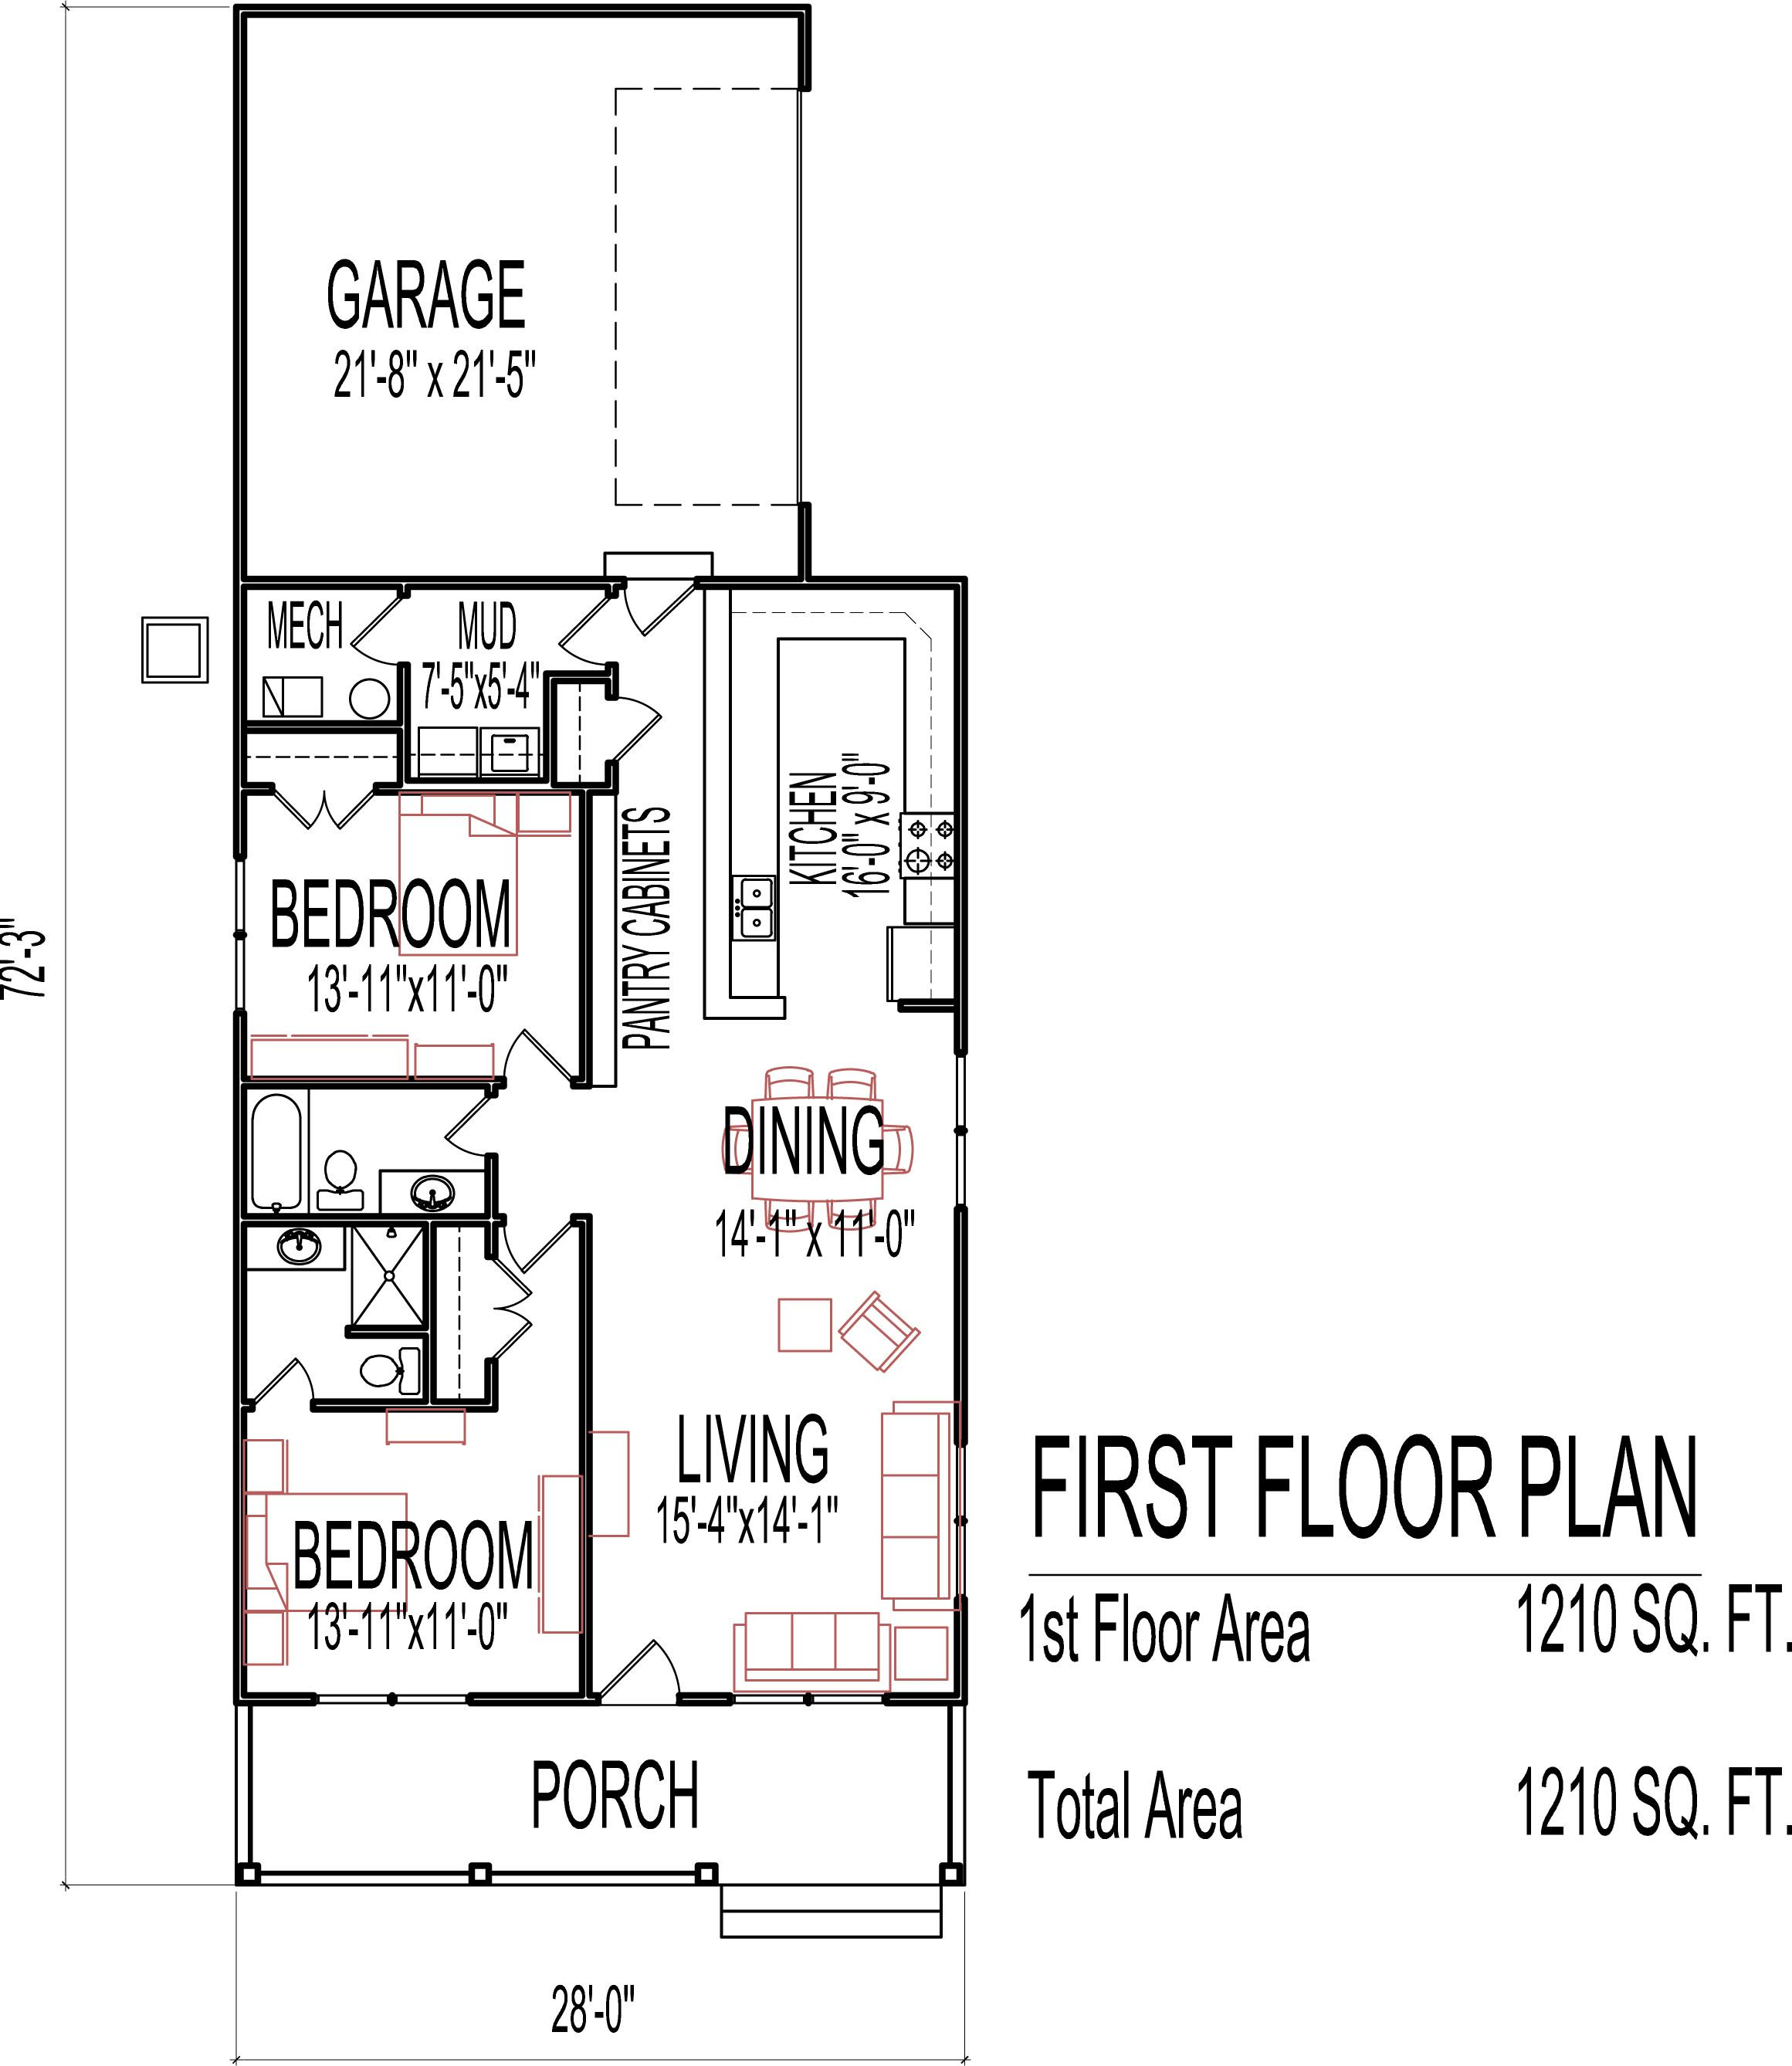 small low cost economical 2 bedroom 2 bath 1200 sq ft single story house floor plans - Small 3 Bedroom House Plans 2